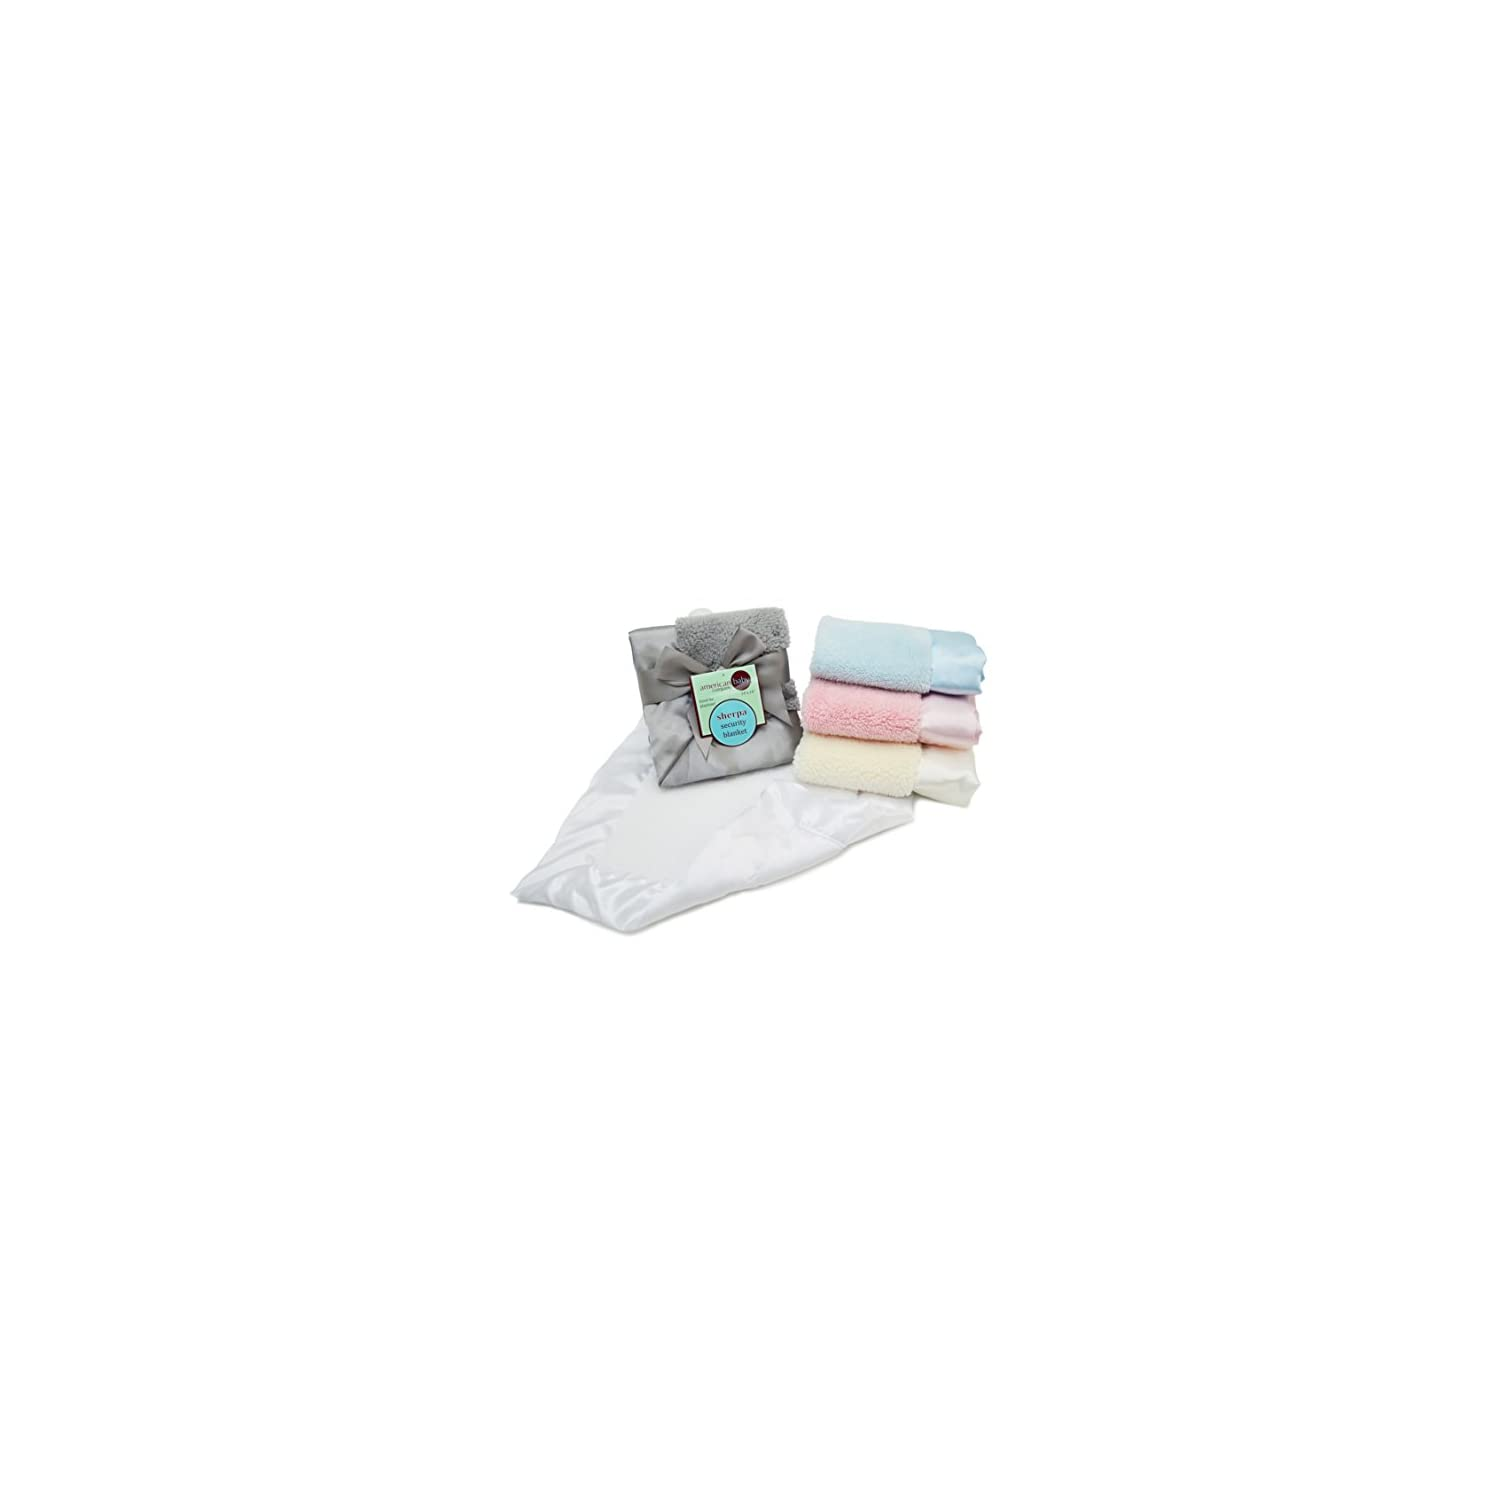 American Baby Company Sherpa Security Blanket, White, for Boys and Girls